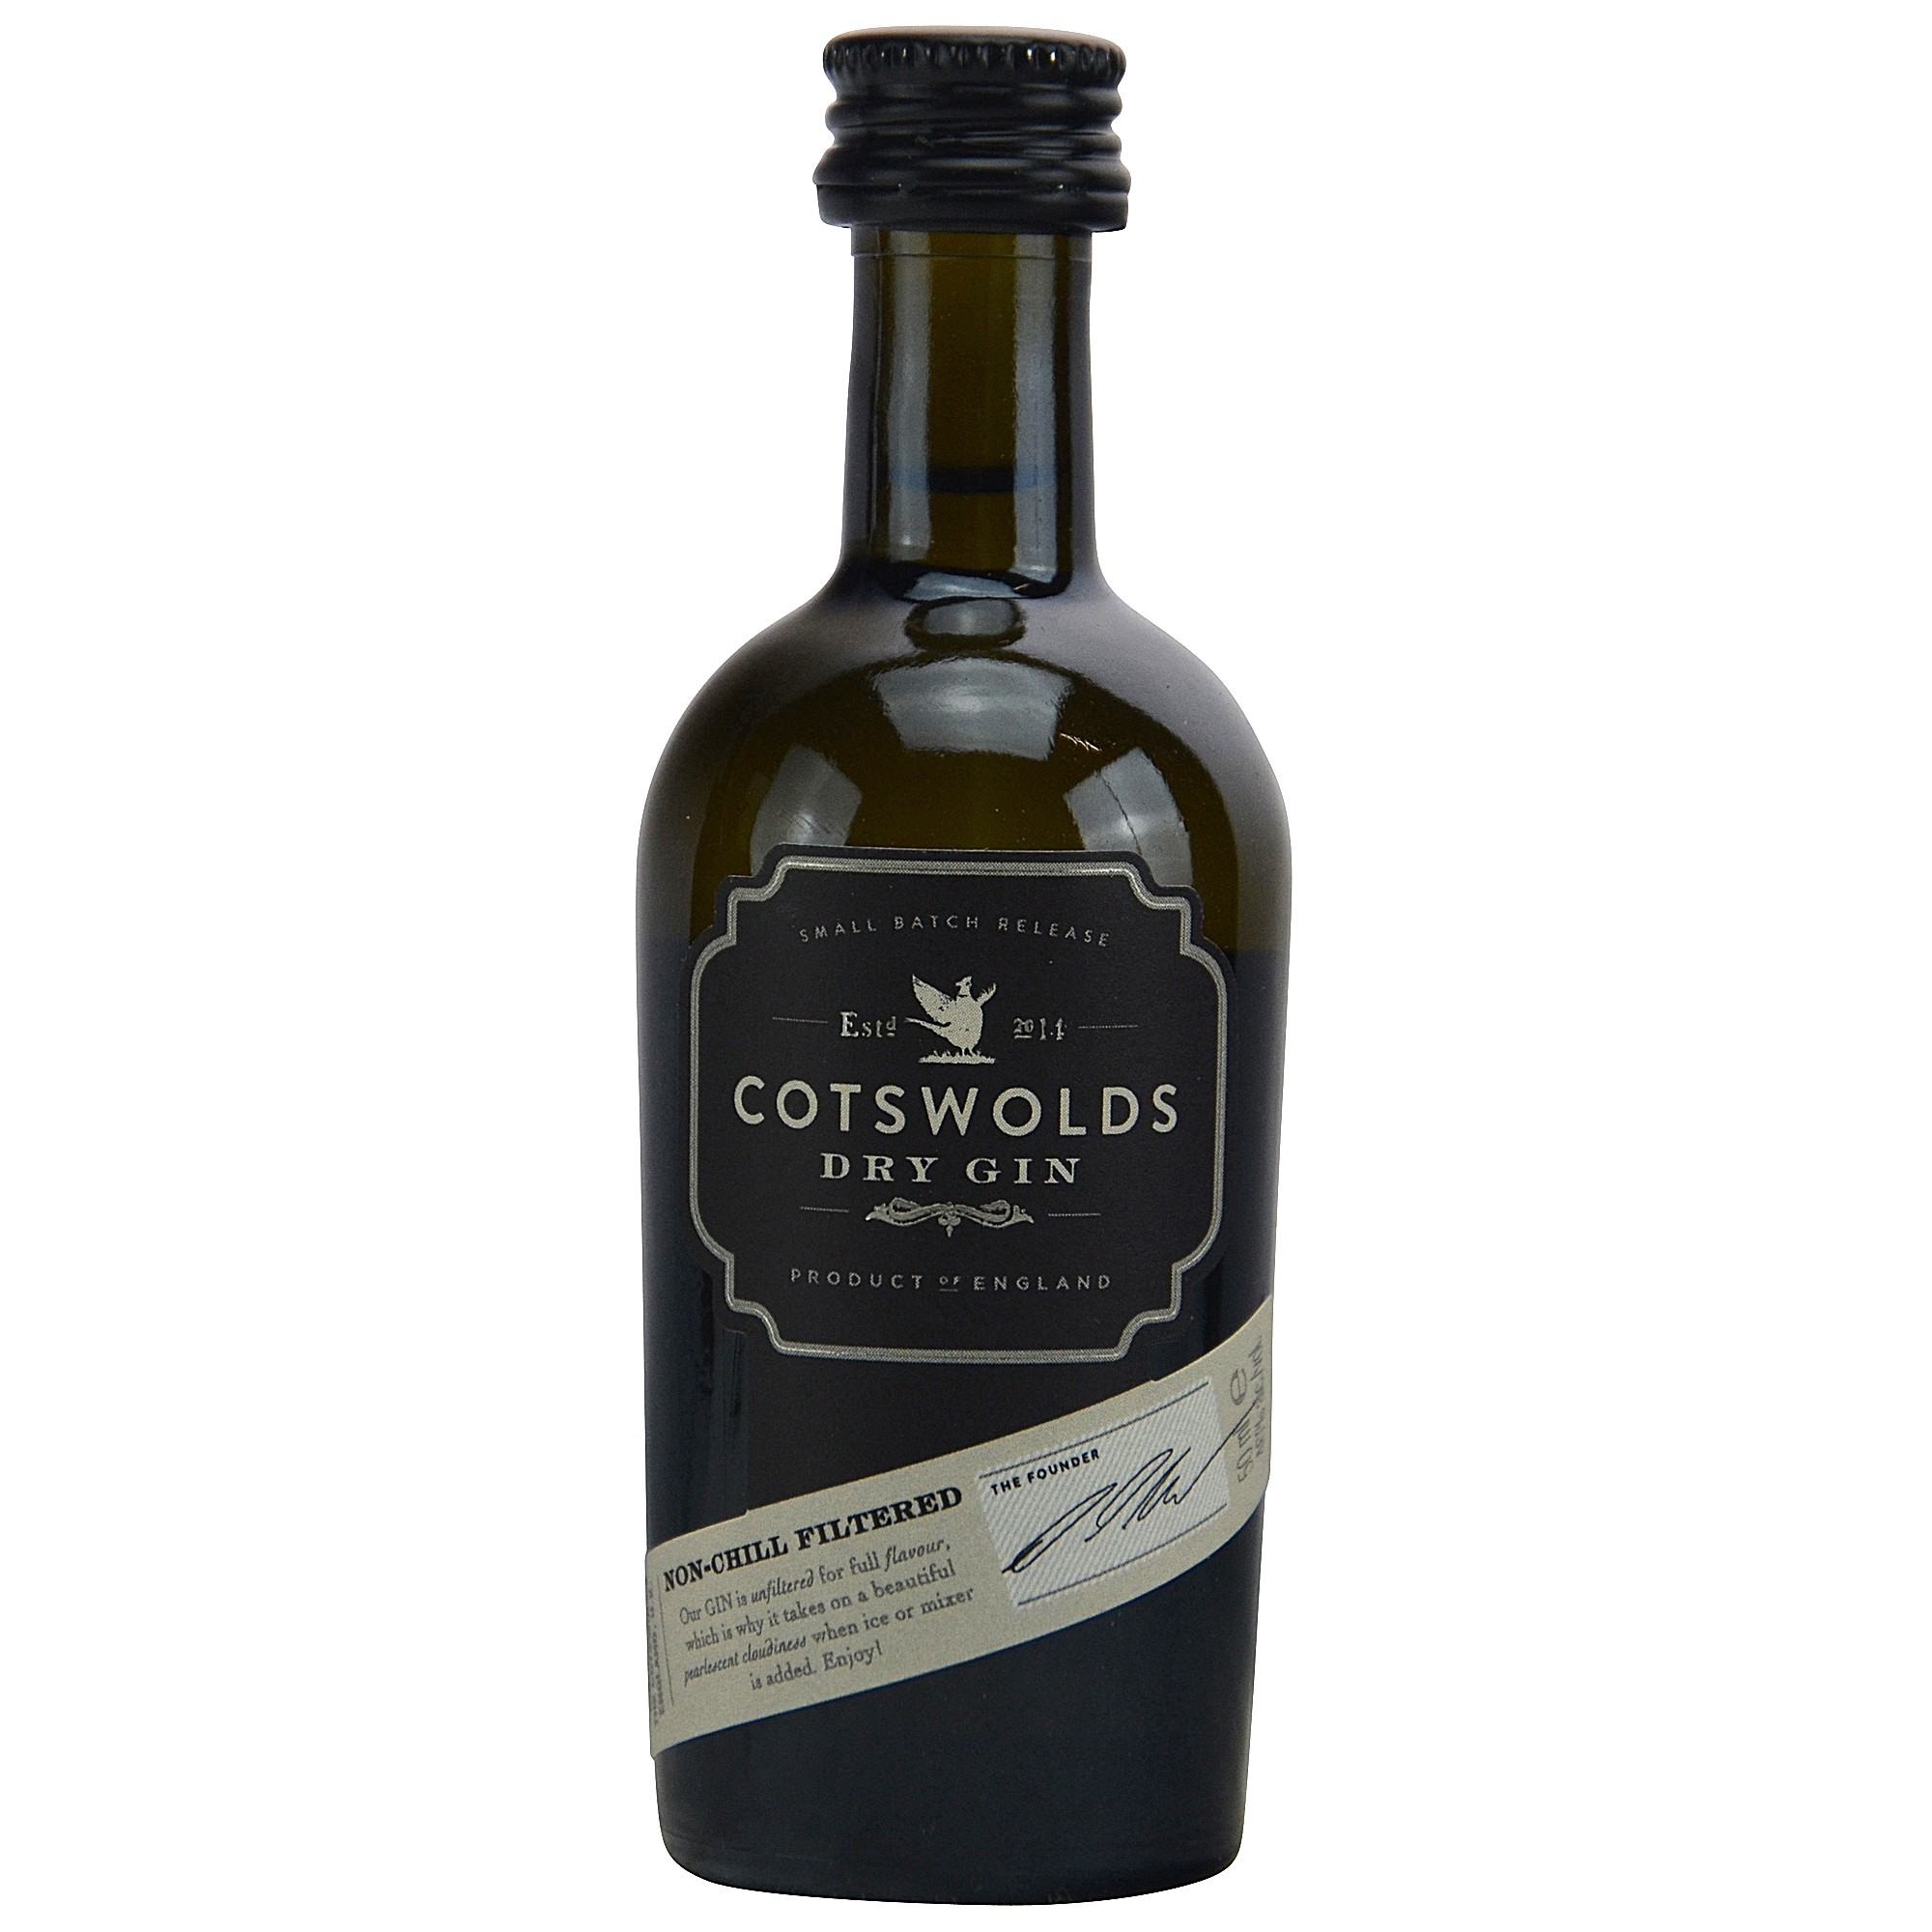 Cotswolds Dry Gin Small Batch Release (Miniatur)